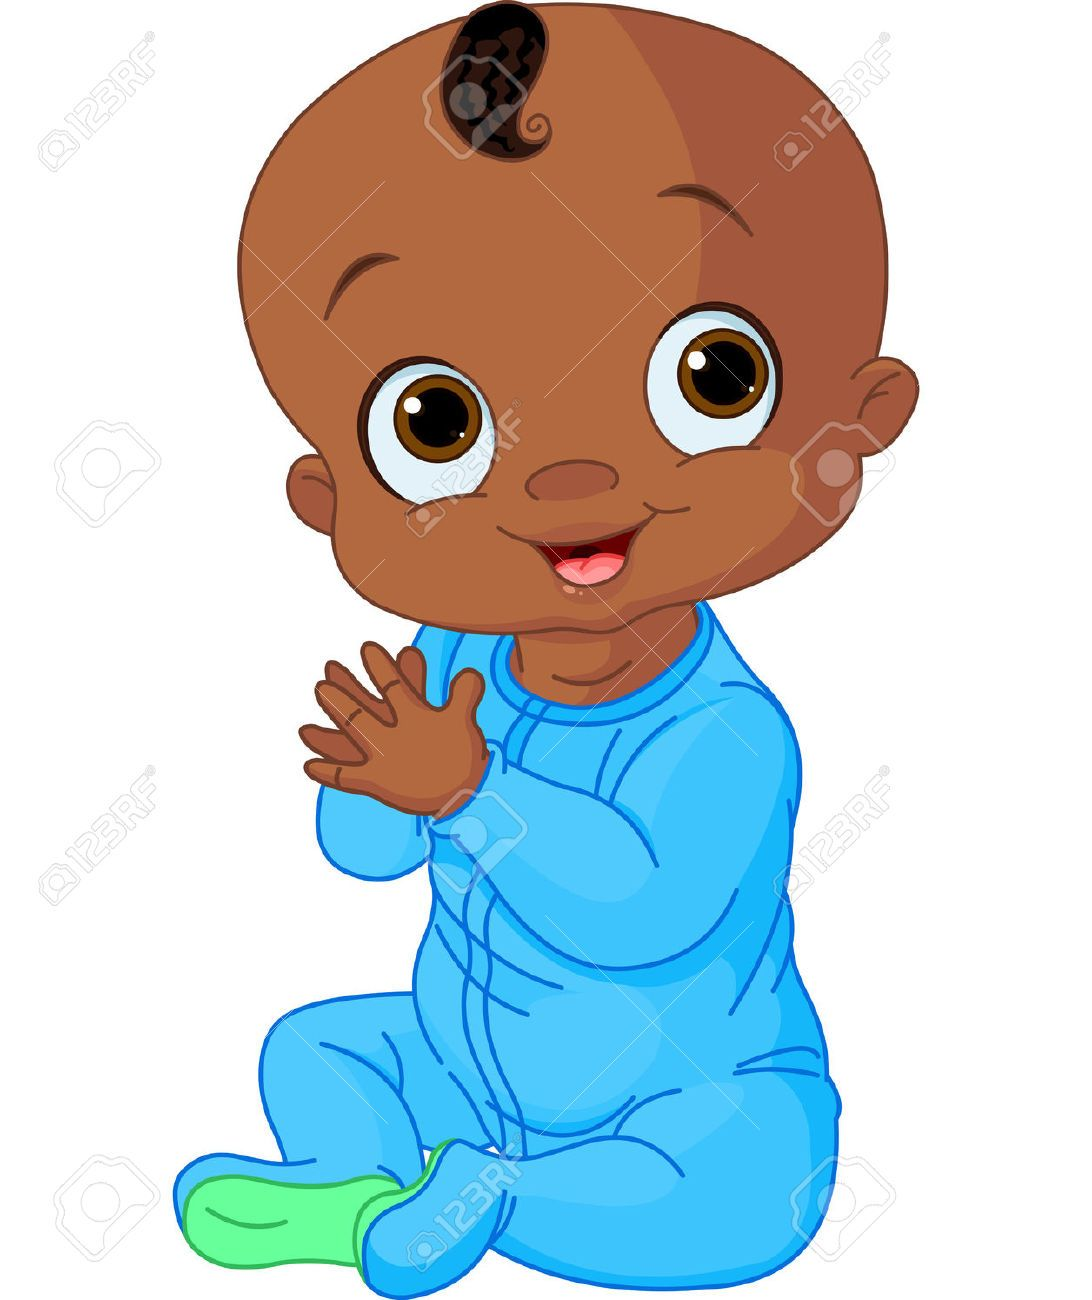 1092x1300 Baby Boy Cartoon Images, Stock Pictures, Royalty Free Baby Boy